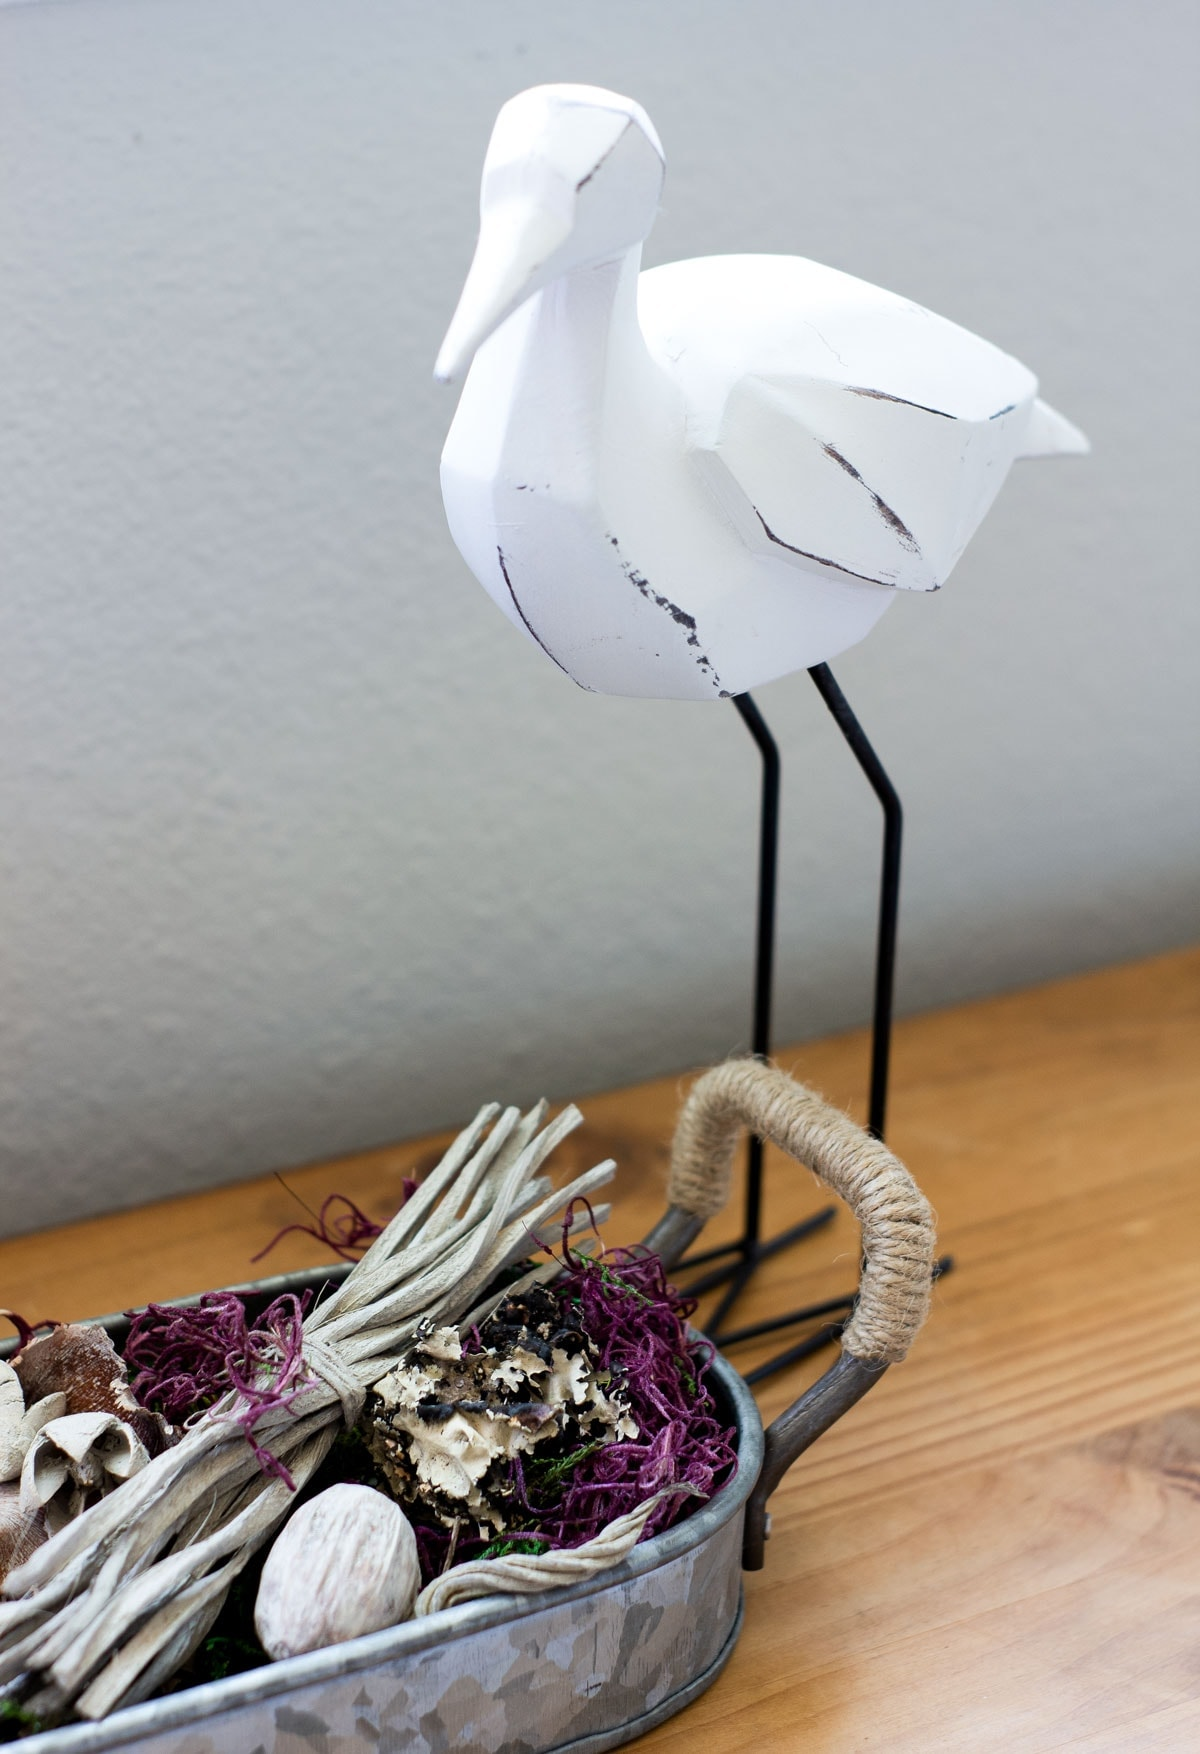 wooden sandpiper with natural elements on wood surface